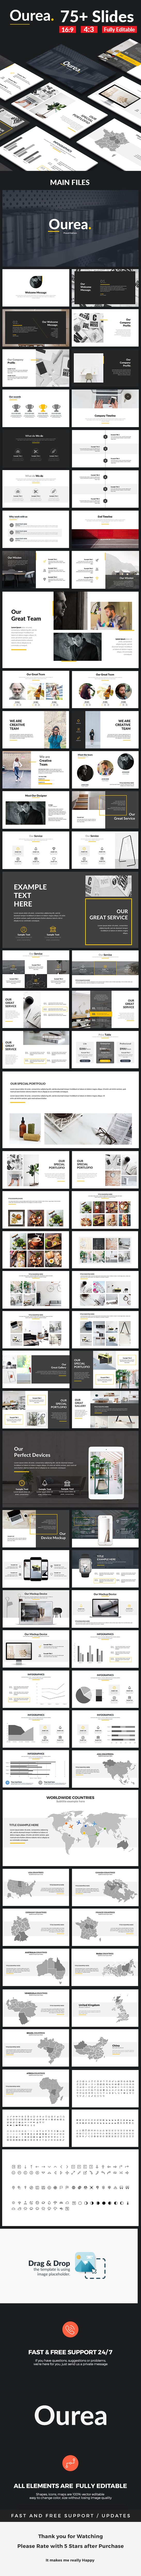 Ourea - Creative Powerpoint Template - Creative PowerPoint Templates